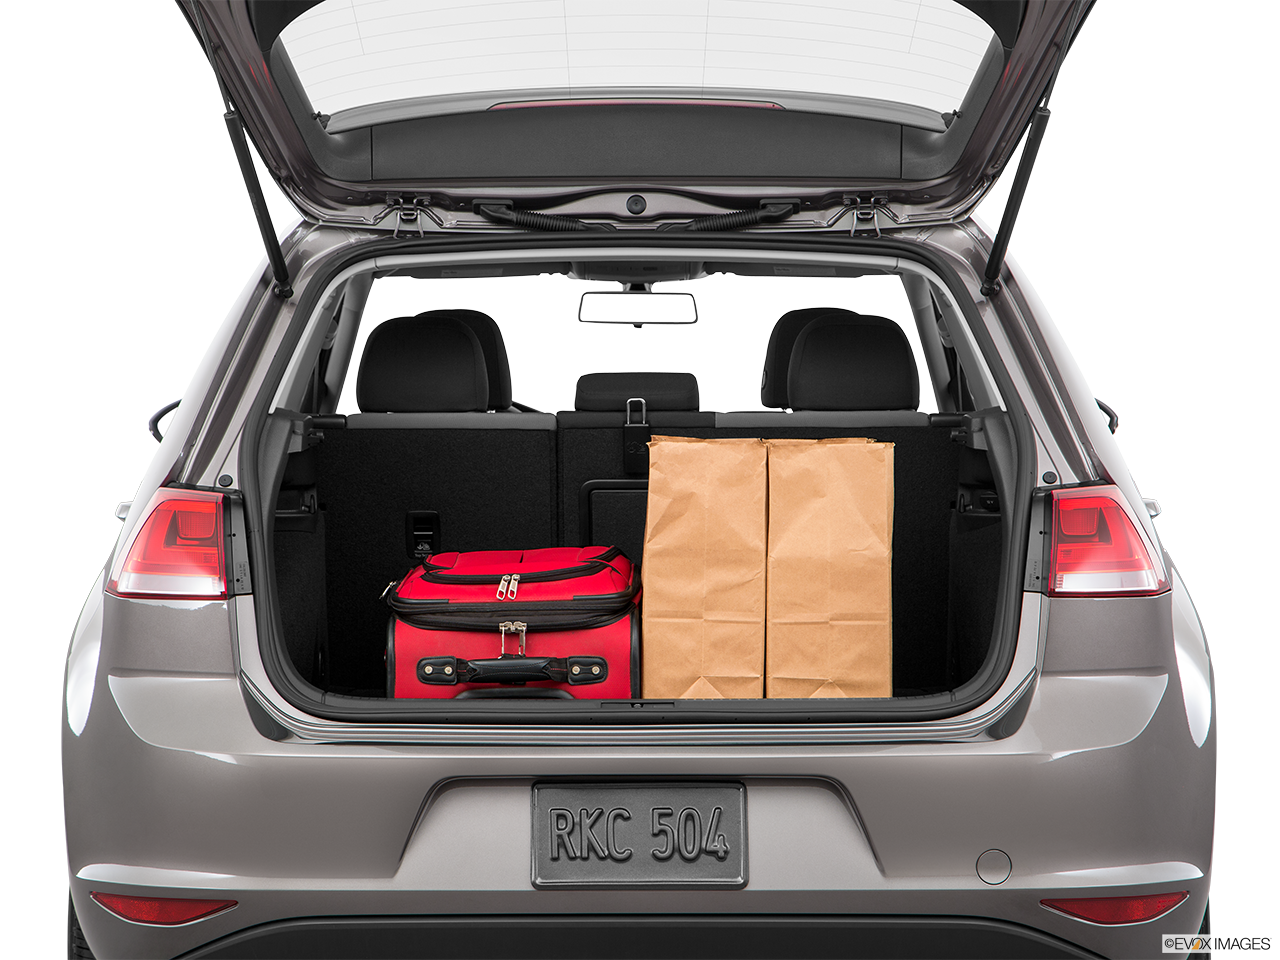 Trunk view of the Volkswagen e-Golf